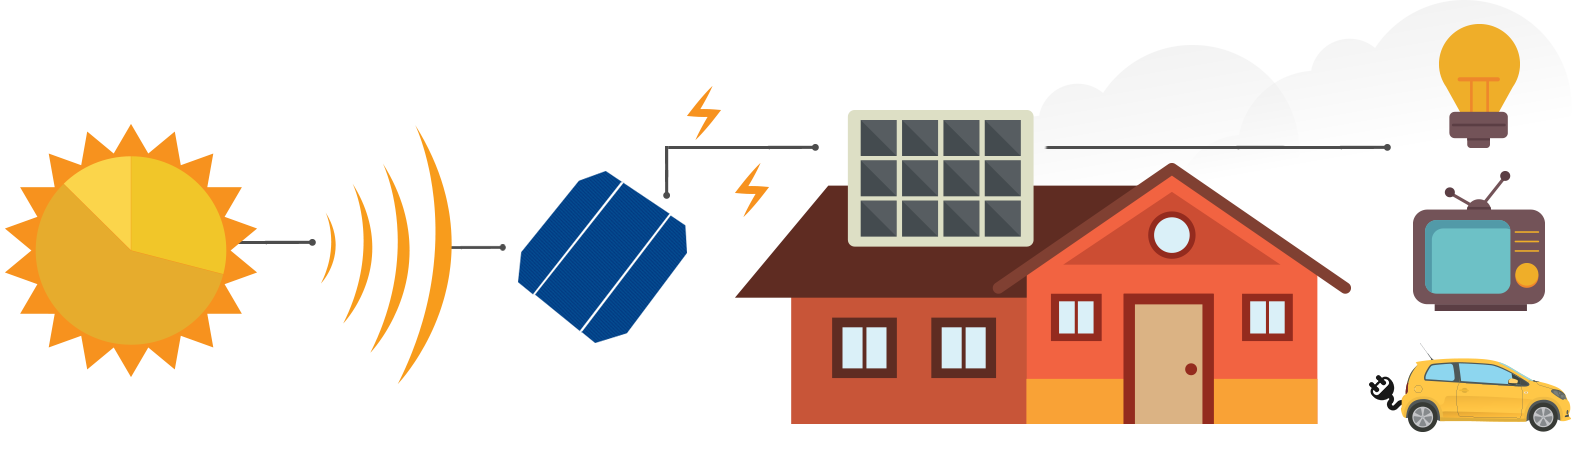 Solar panel house clipart picture transparent library 8MSolar | Highest Rated Solar Panel Installer serving Cary, Raleigh ... picture transparent library